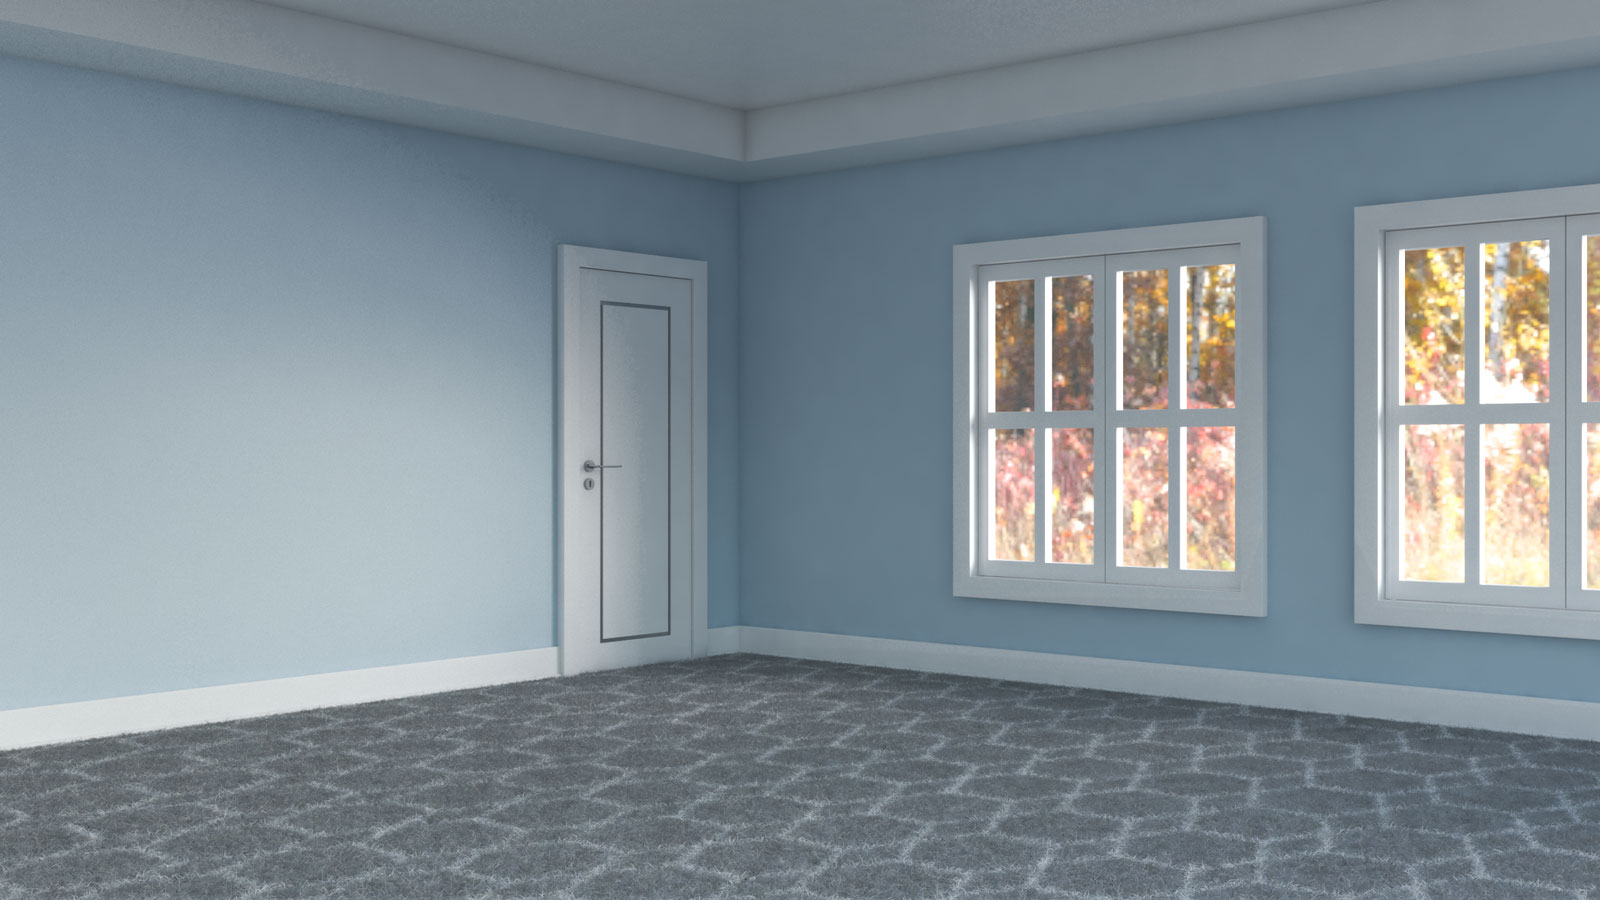 Gray and white carpet flooring with light blue walls